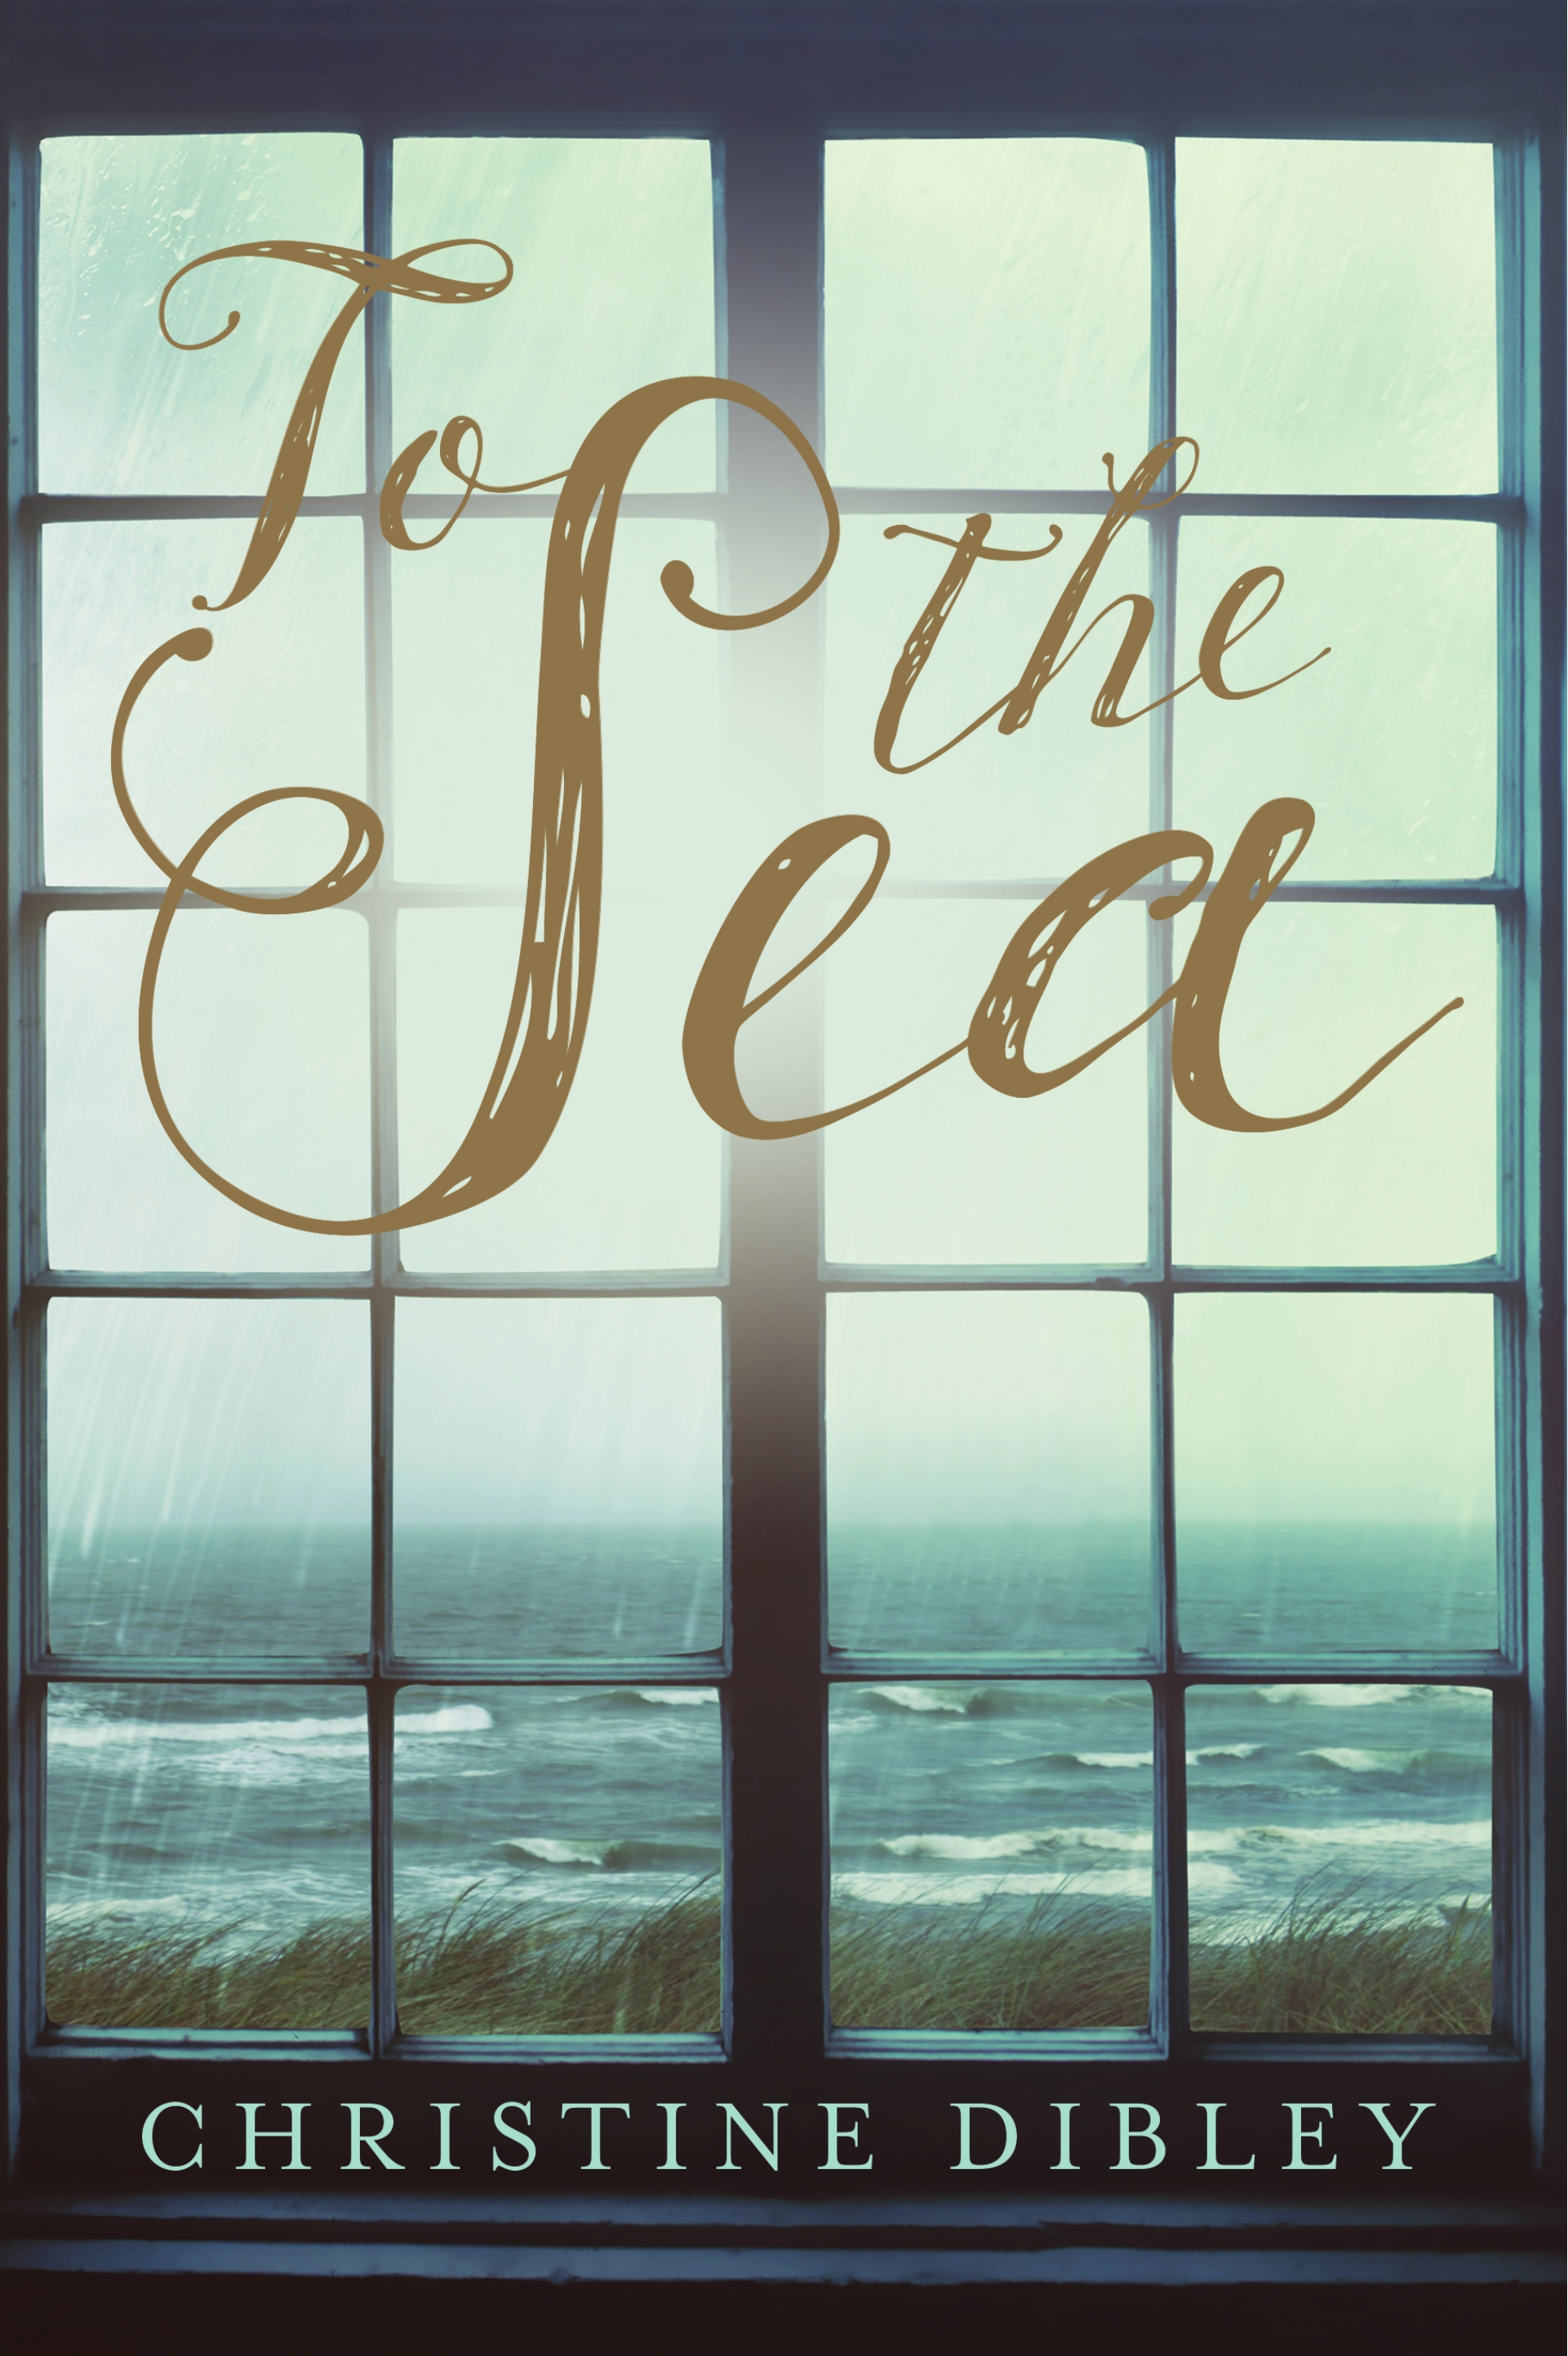 (Review): To the Sea by Christine Dibley